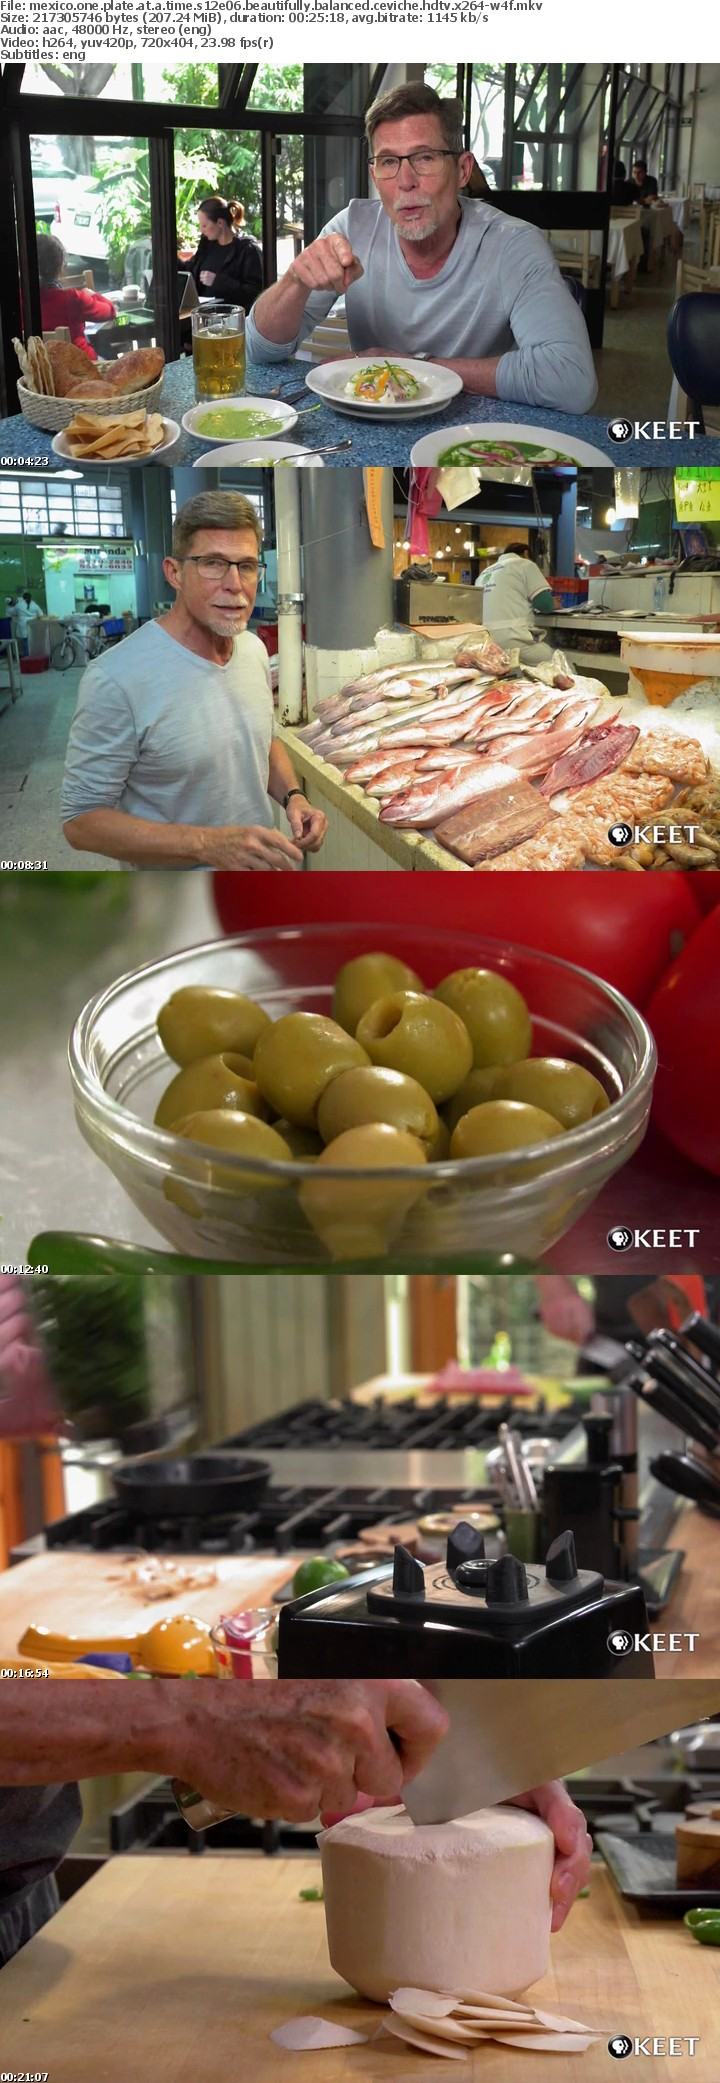 Mexico One Plate At A Time S12E06 Beautifully Balanced Ceviche HDTV x264-W4F